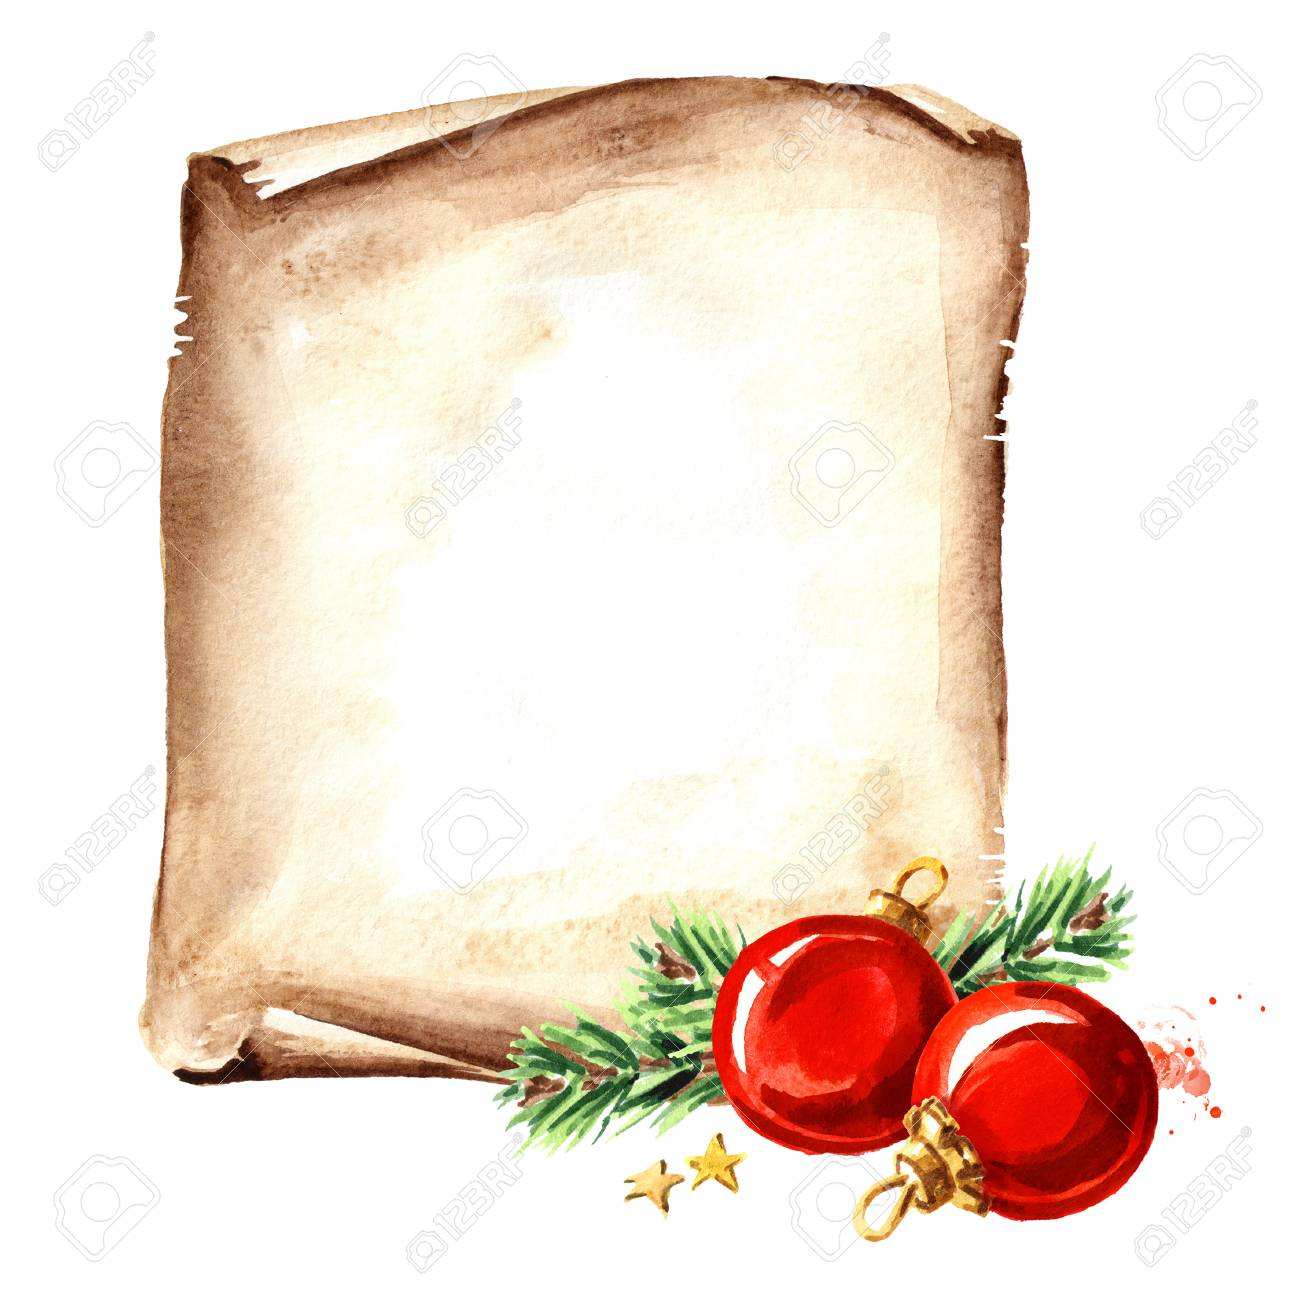 Scroll Template | Scroll Of Old Paper With Christmas Red Balls New Year Card Template